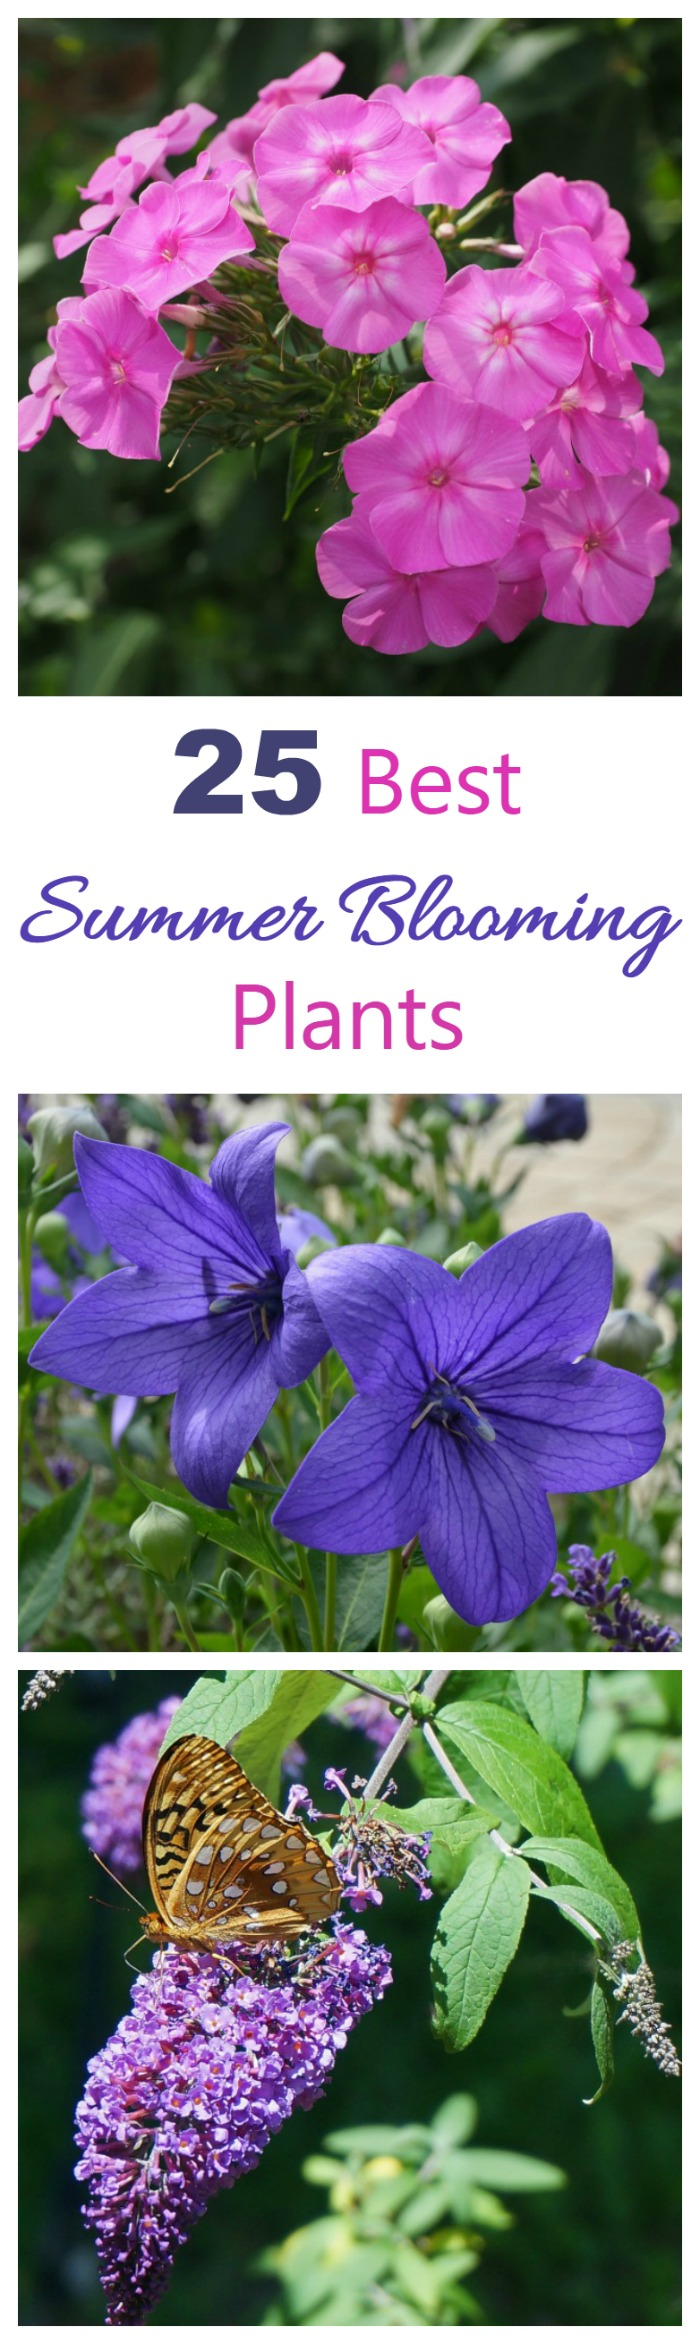 These summer blooming plants will give you dramatic color all summer long , and in many cases, right into the fall. Grow a few of these to make your yard the talk of the neighborhood.